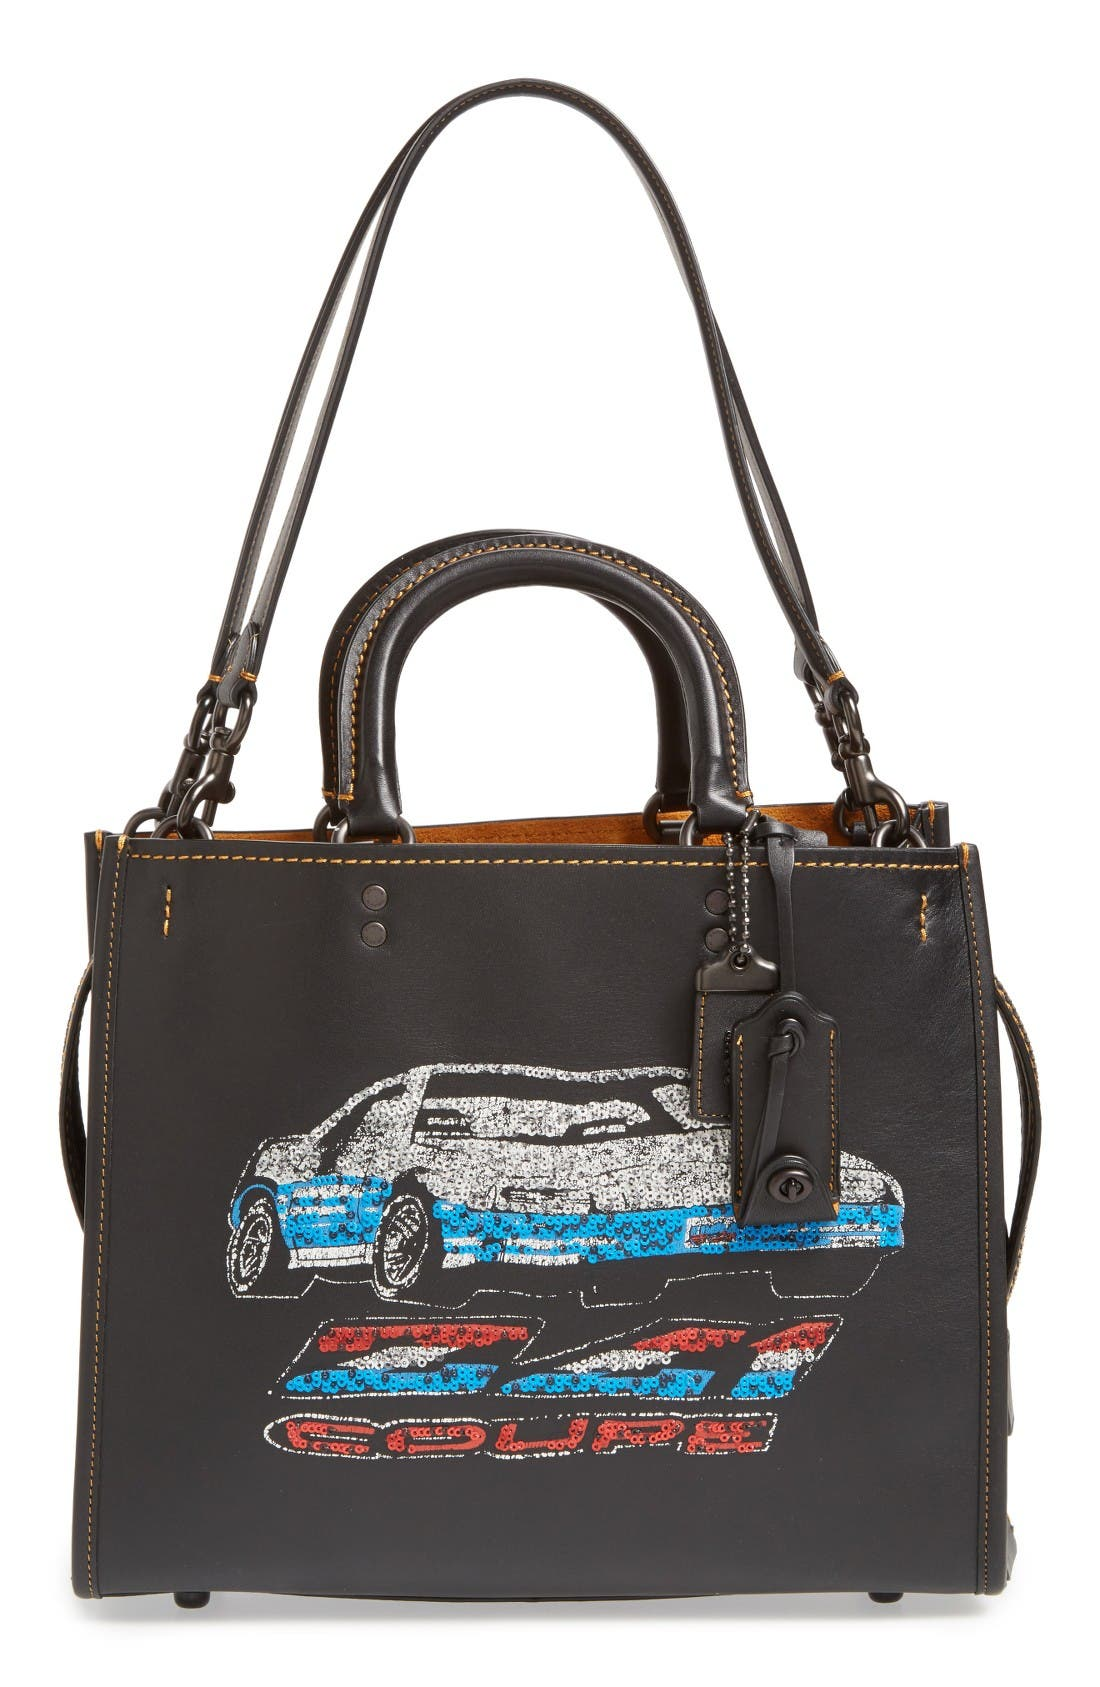 COACH 1941 Car Embellished Rogue Leather Satchel